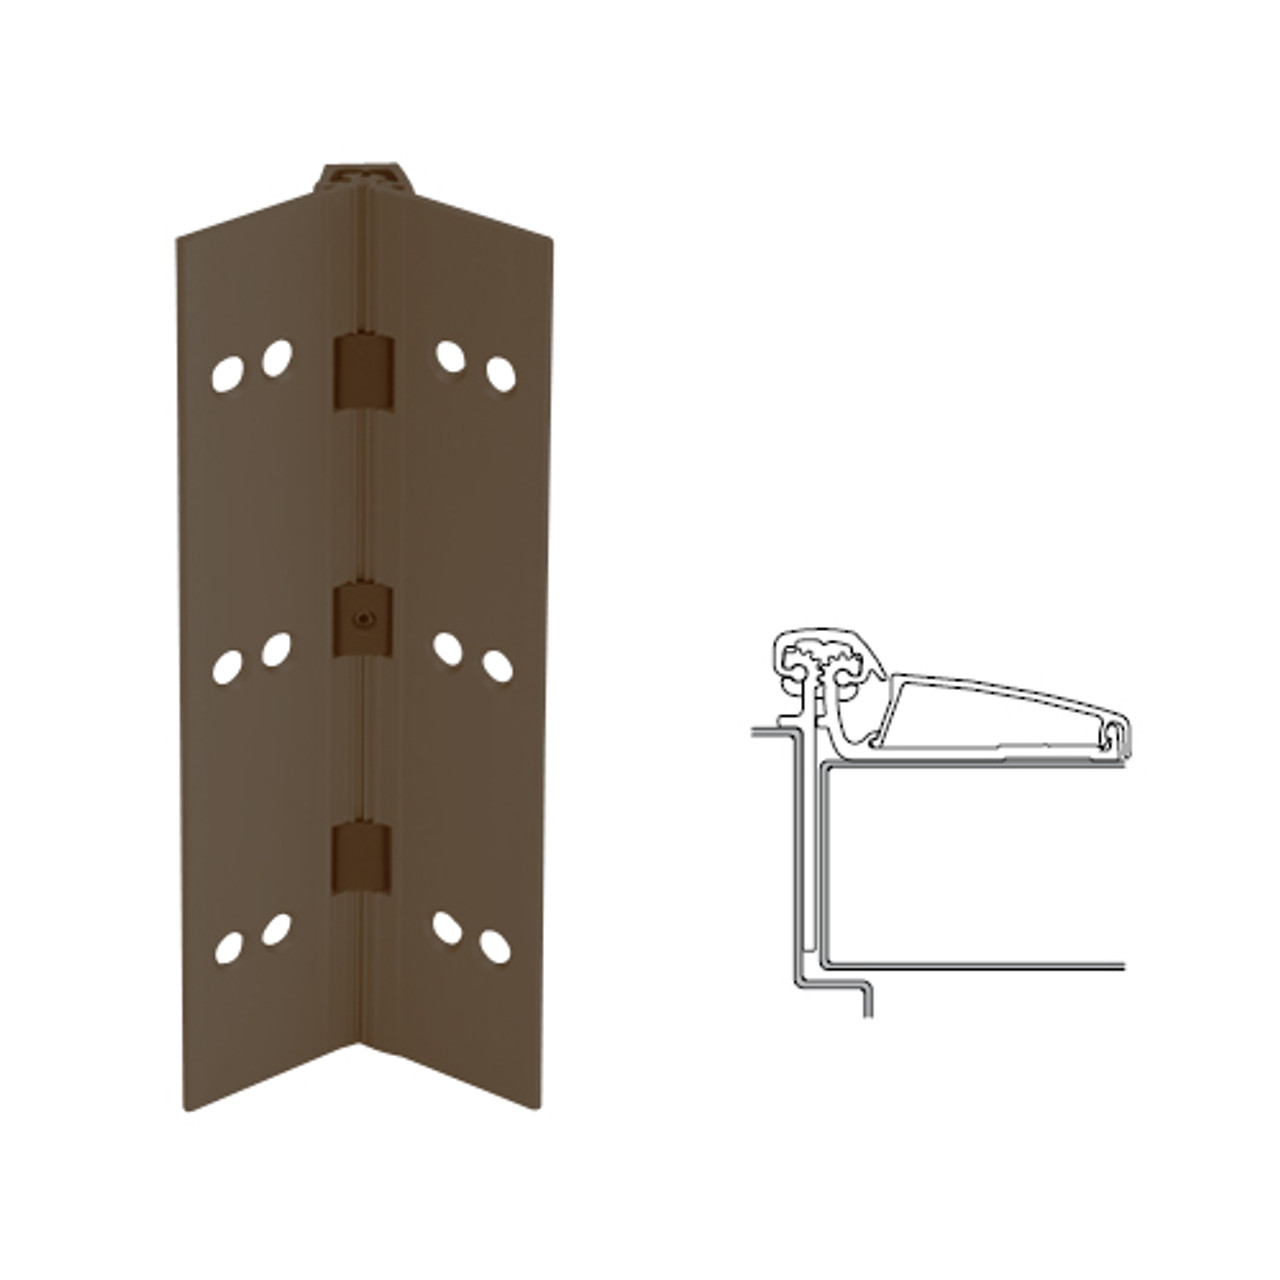 046XY-313AN-85-SECWDHM IVES Adjustable Half Surface Continuous Geared Hinges with Security Screws - Hex Pin Drive in Dark Bronze Anodized